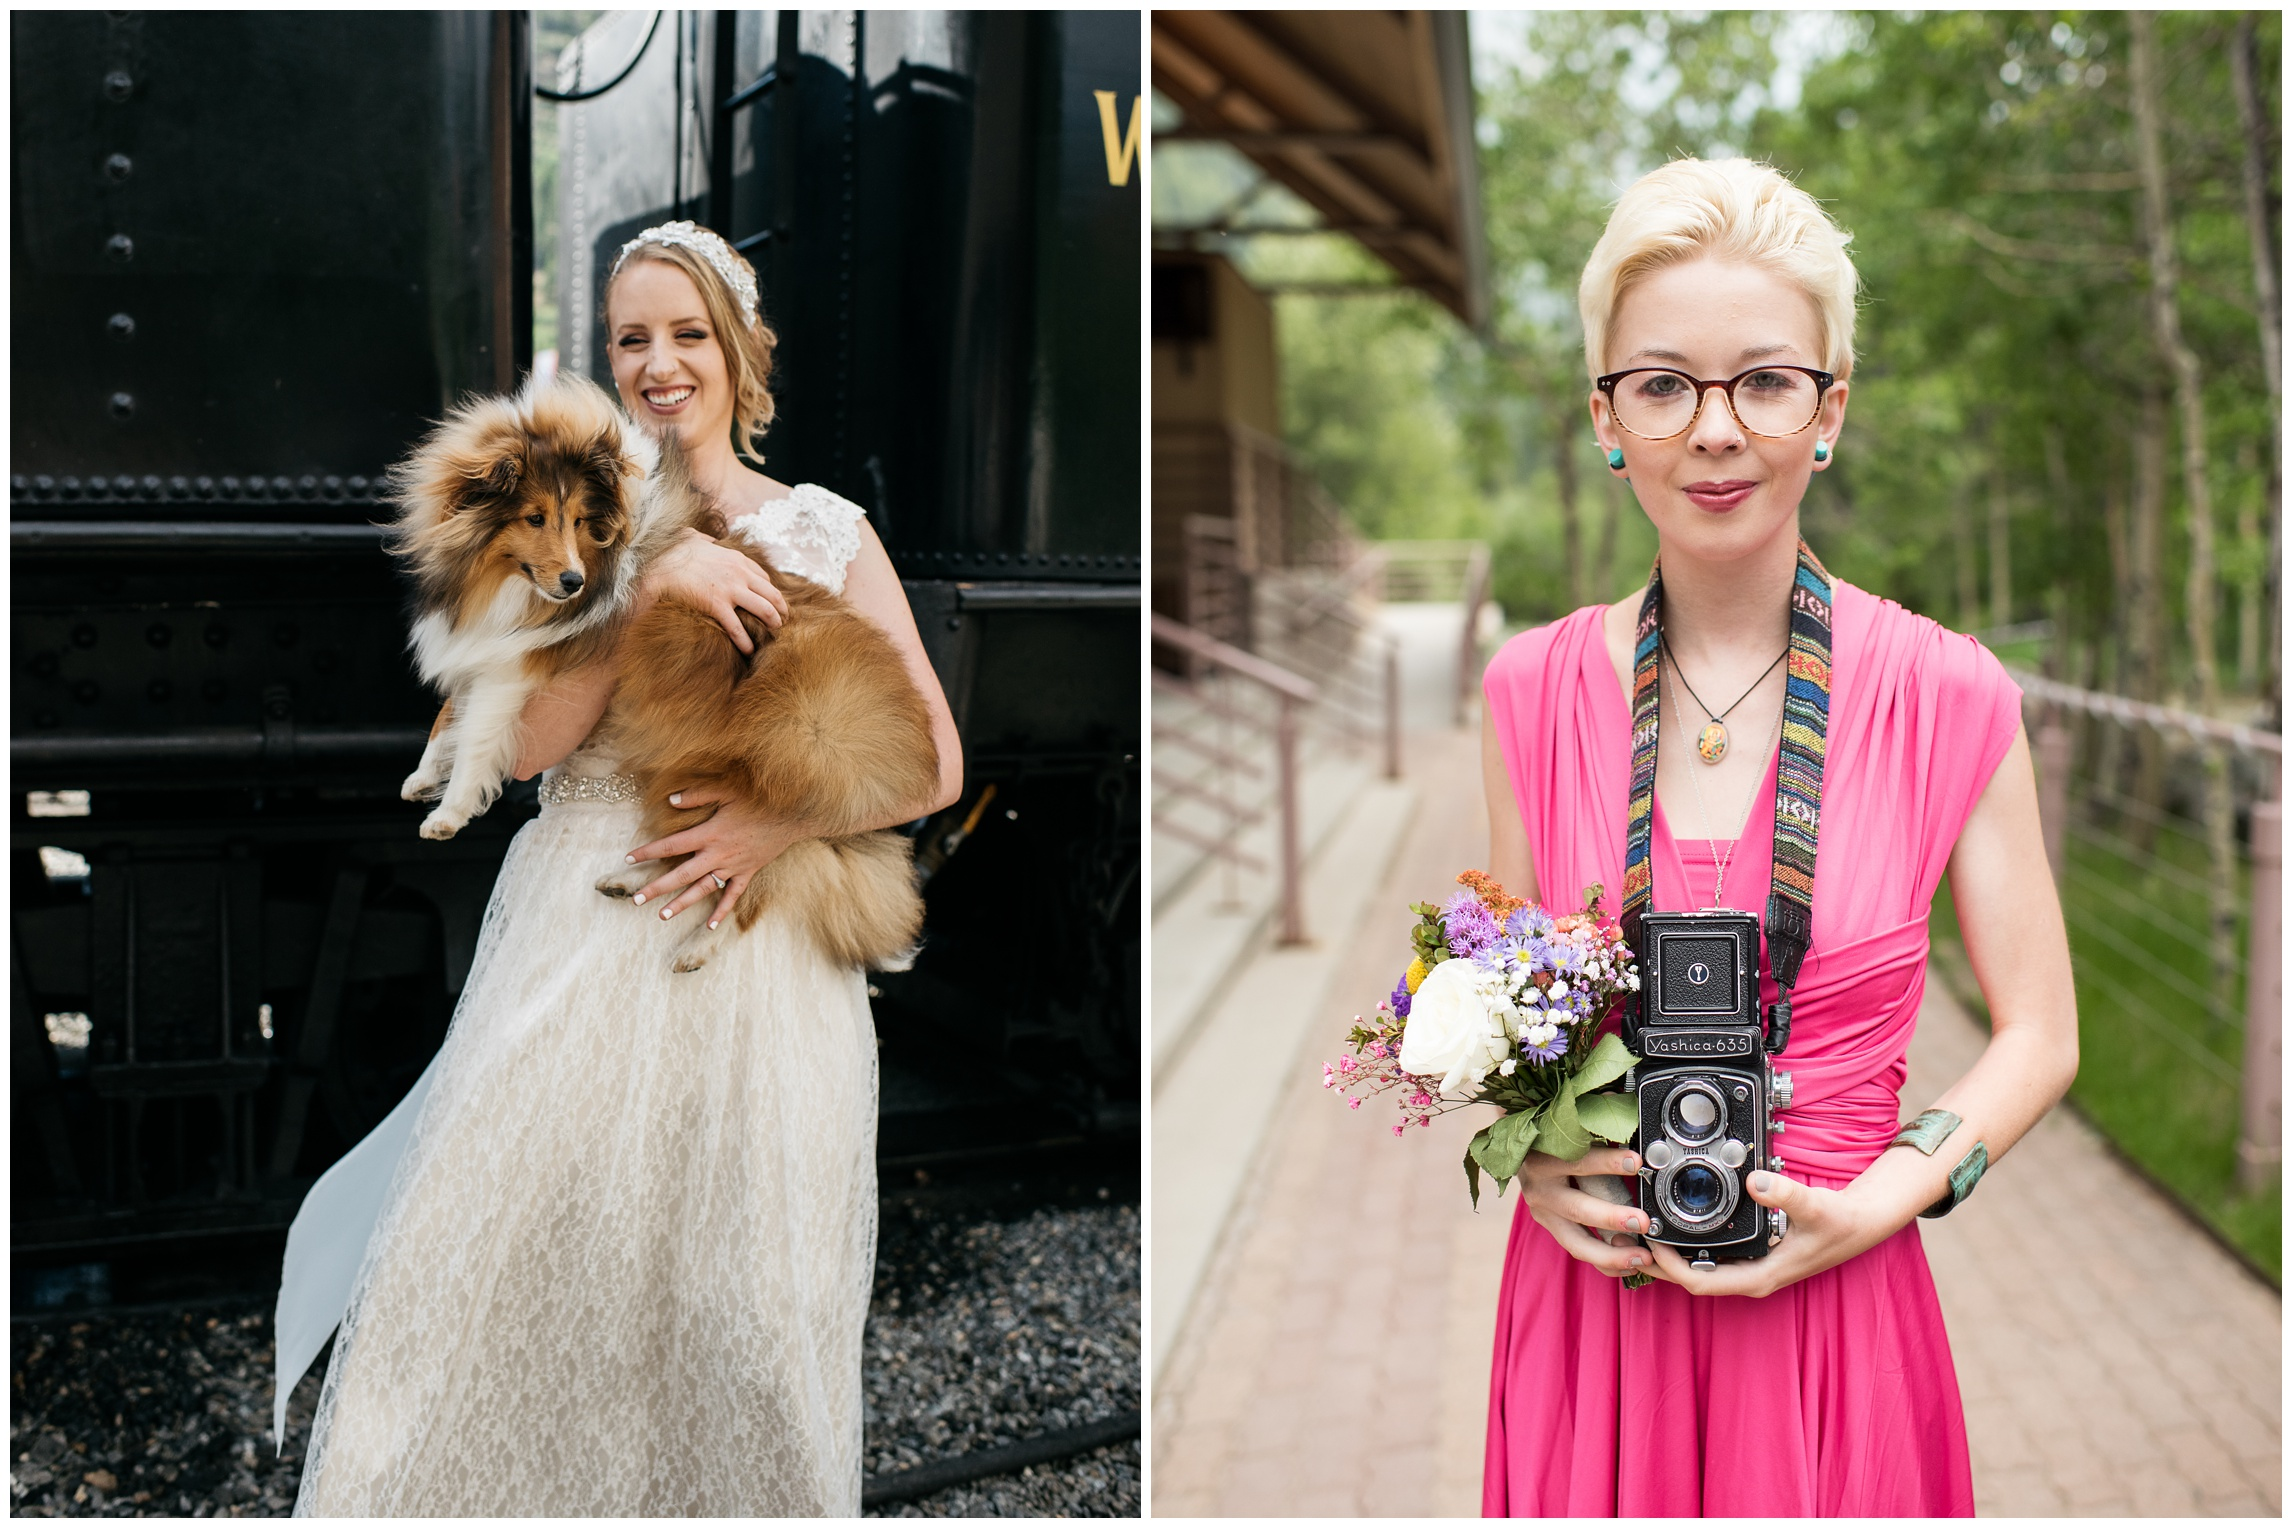 A bride poses with her adorable corgi. A bridesmaid and her antique camera. Wedding photography by Sonja Salzburg of Sonja K Photography.